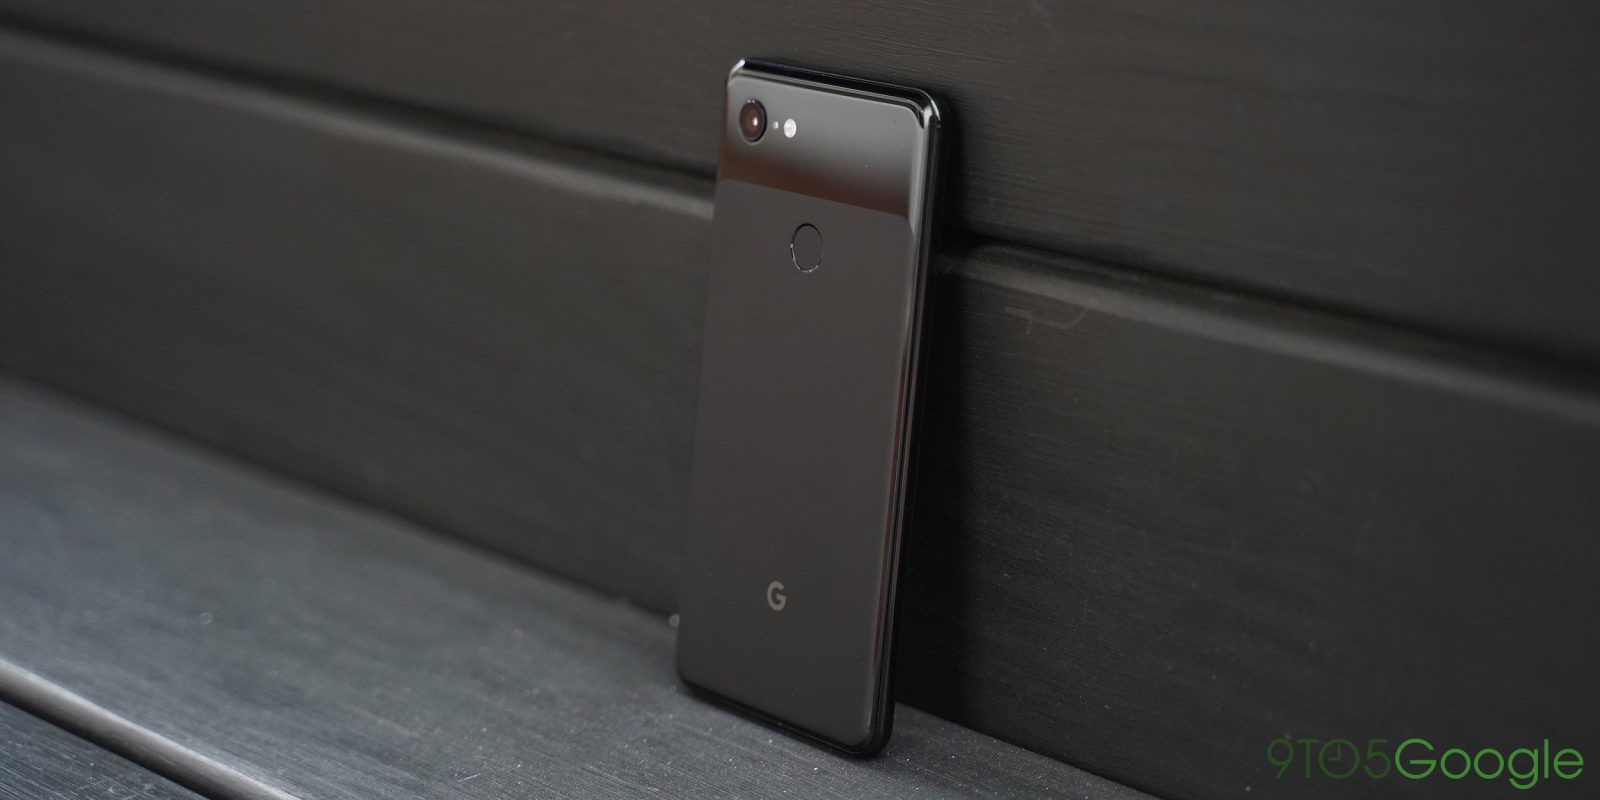 Father's Day at Verizon has $300 off or BOGO FREE Pixel 3/XL